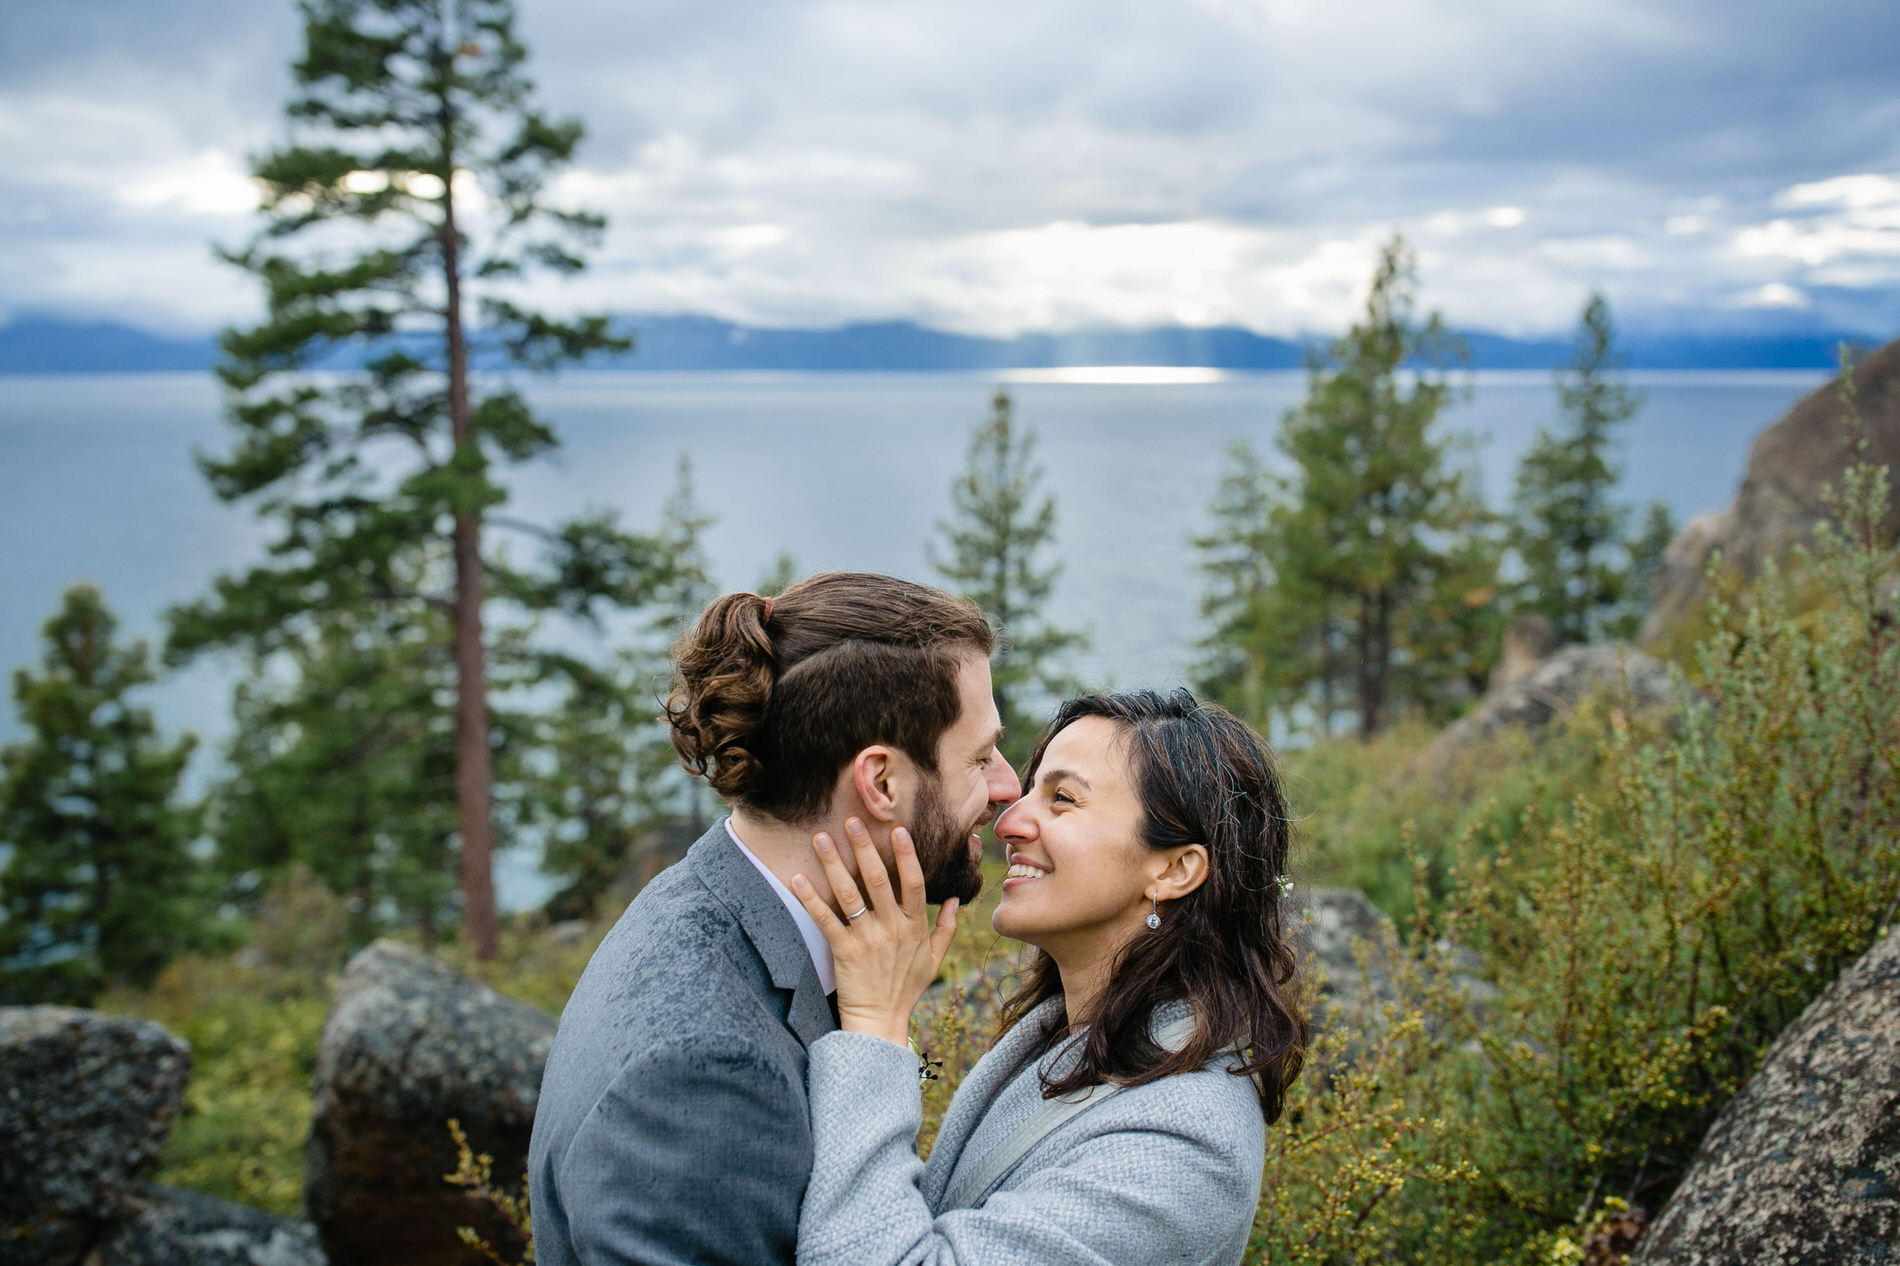 Lake Tahoe Outdoor Elopement Portrait | Portrait of the bride and groom in the forest